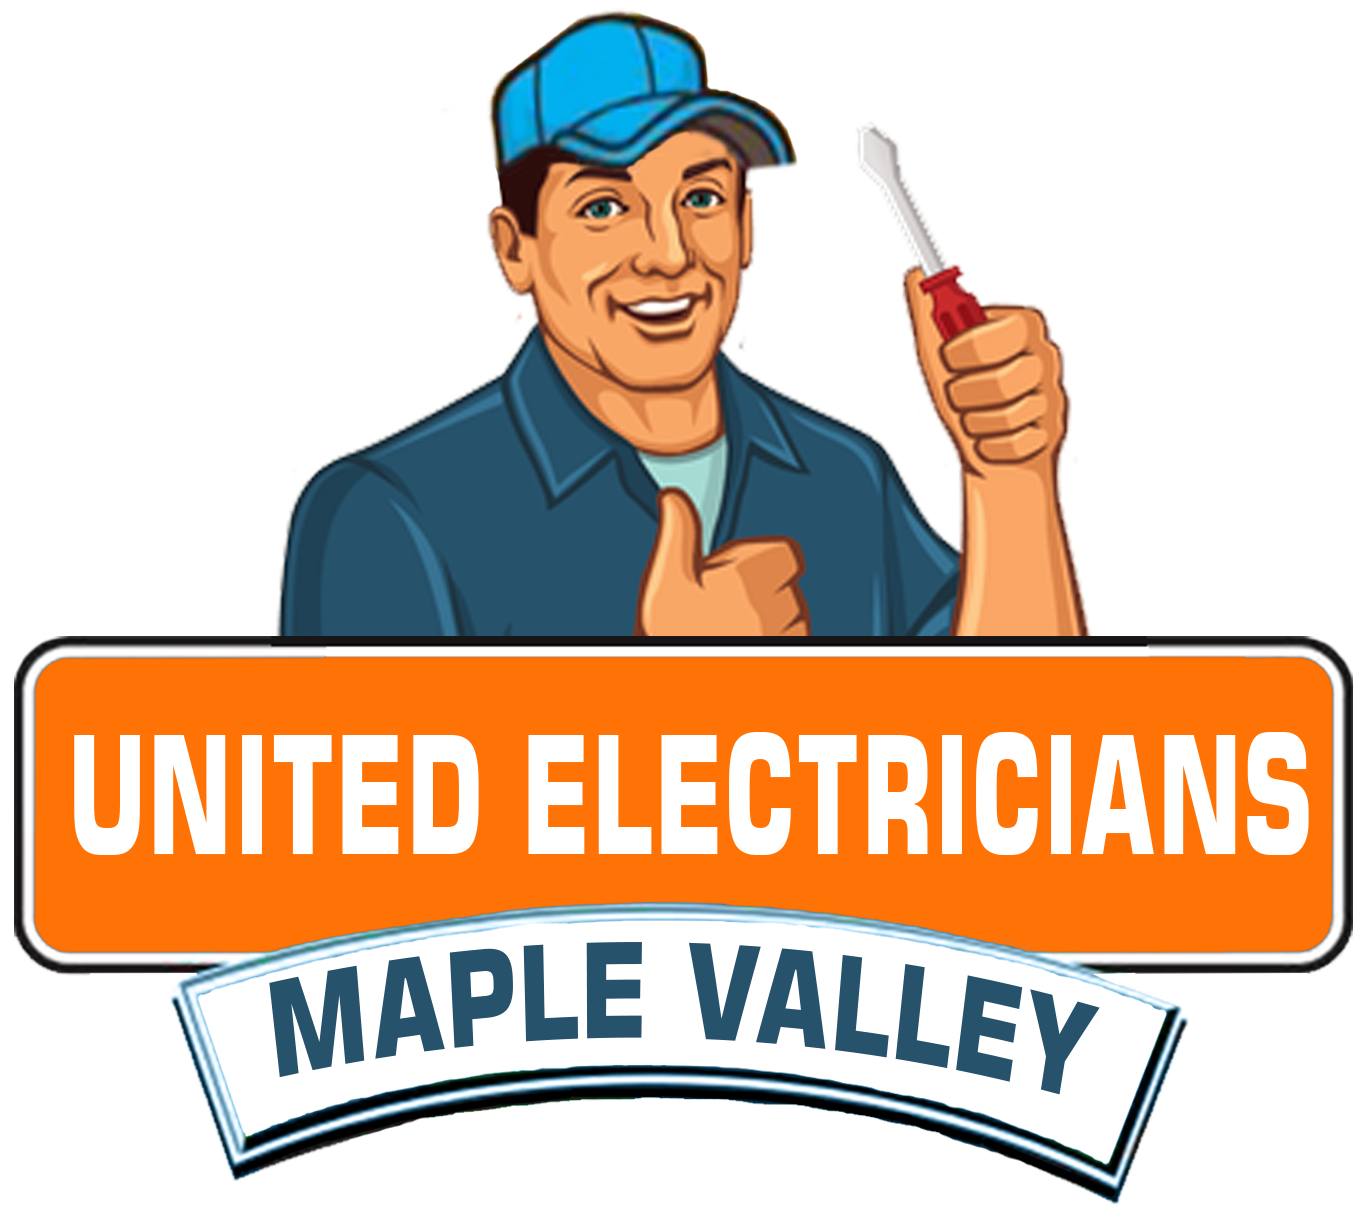 Contractor clipart electrician. Electrical service maple valley